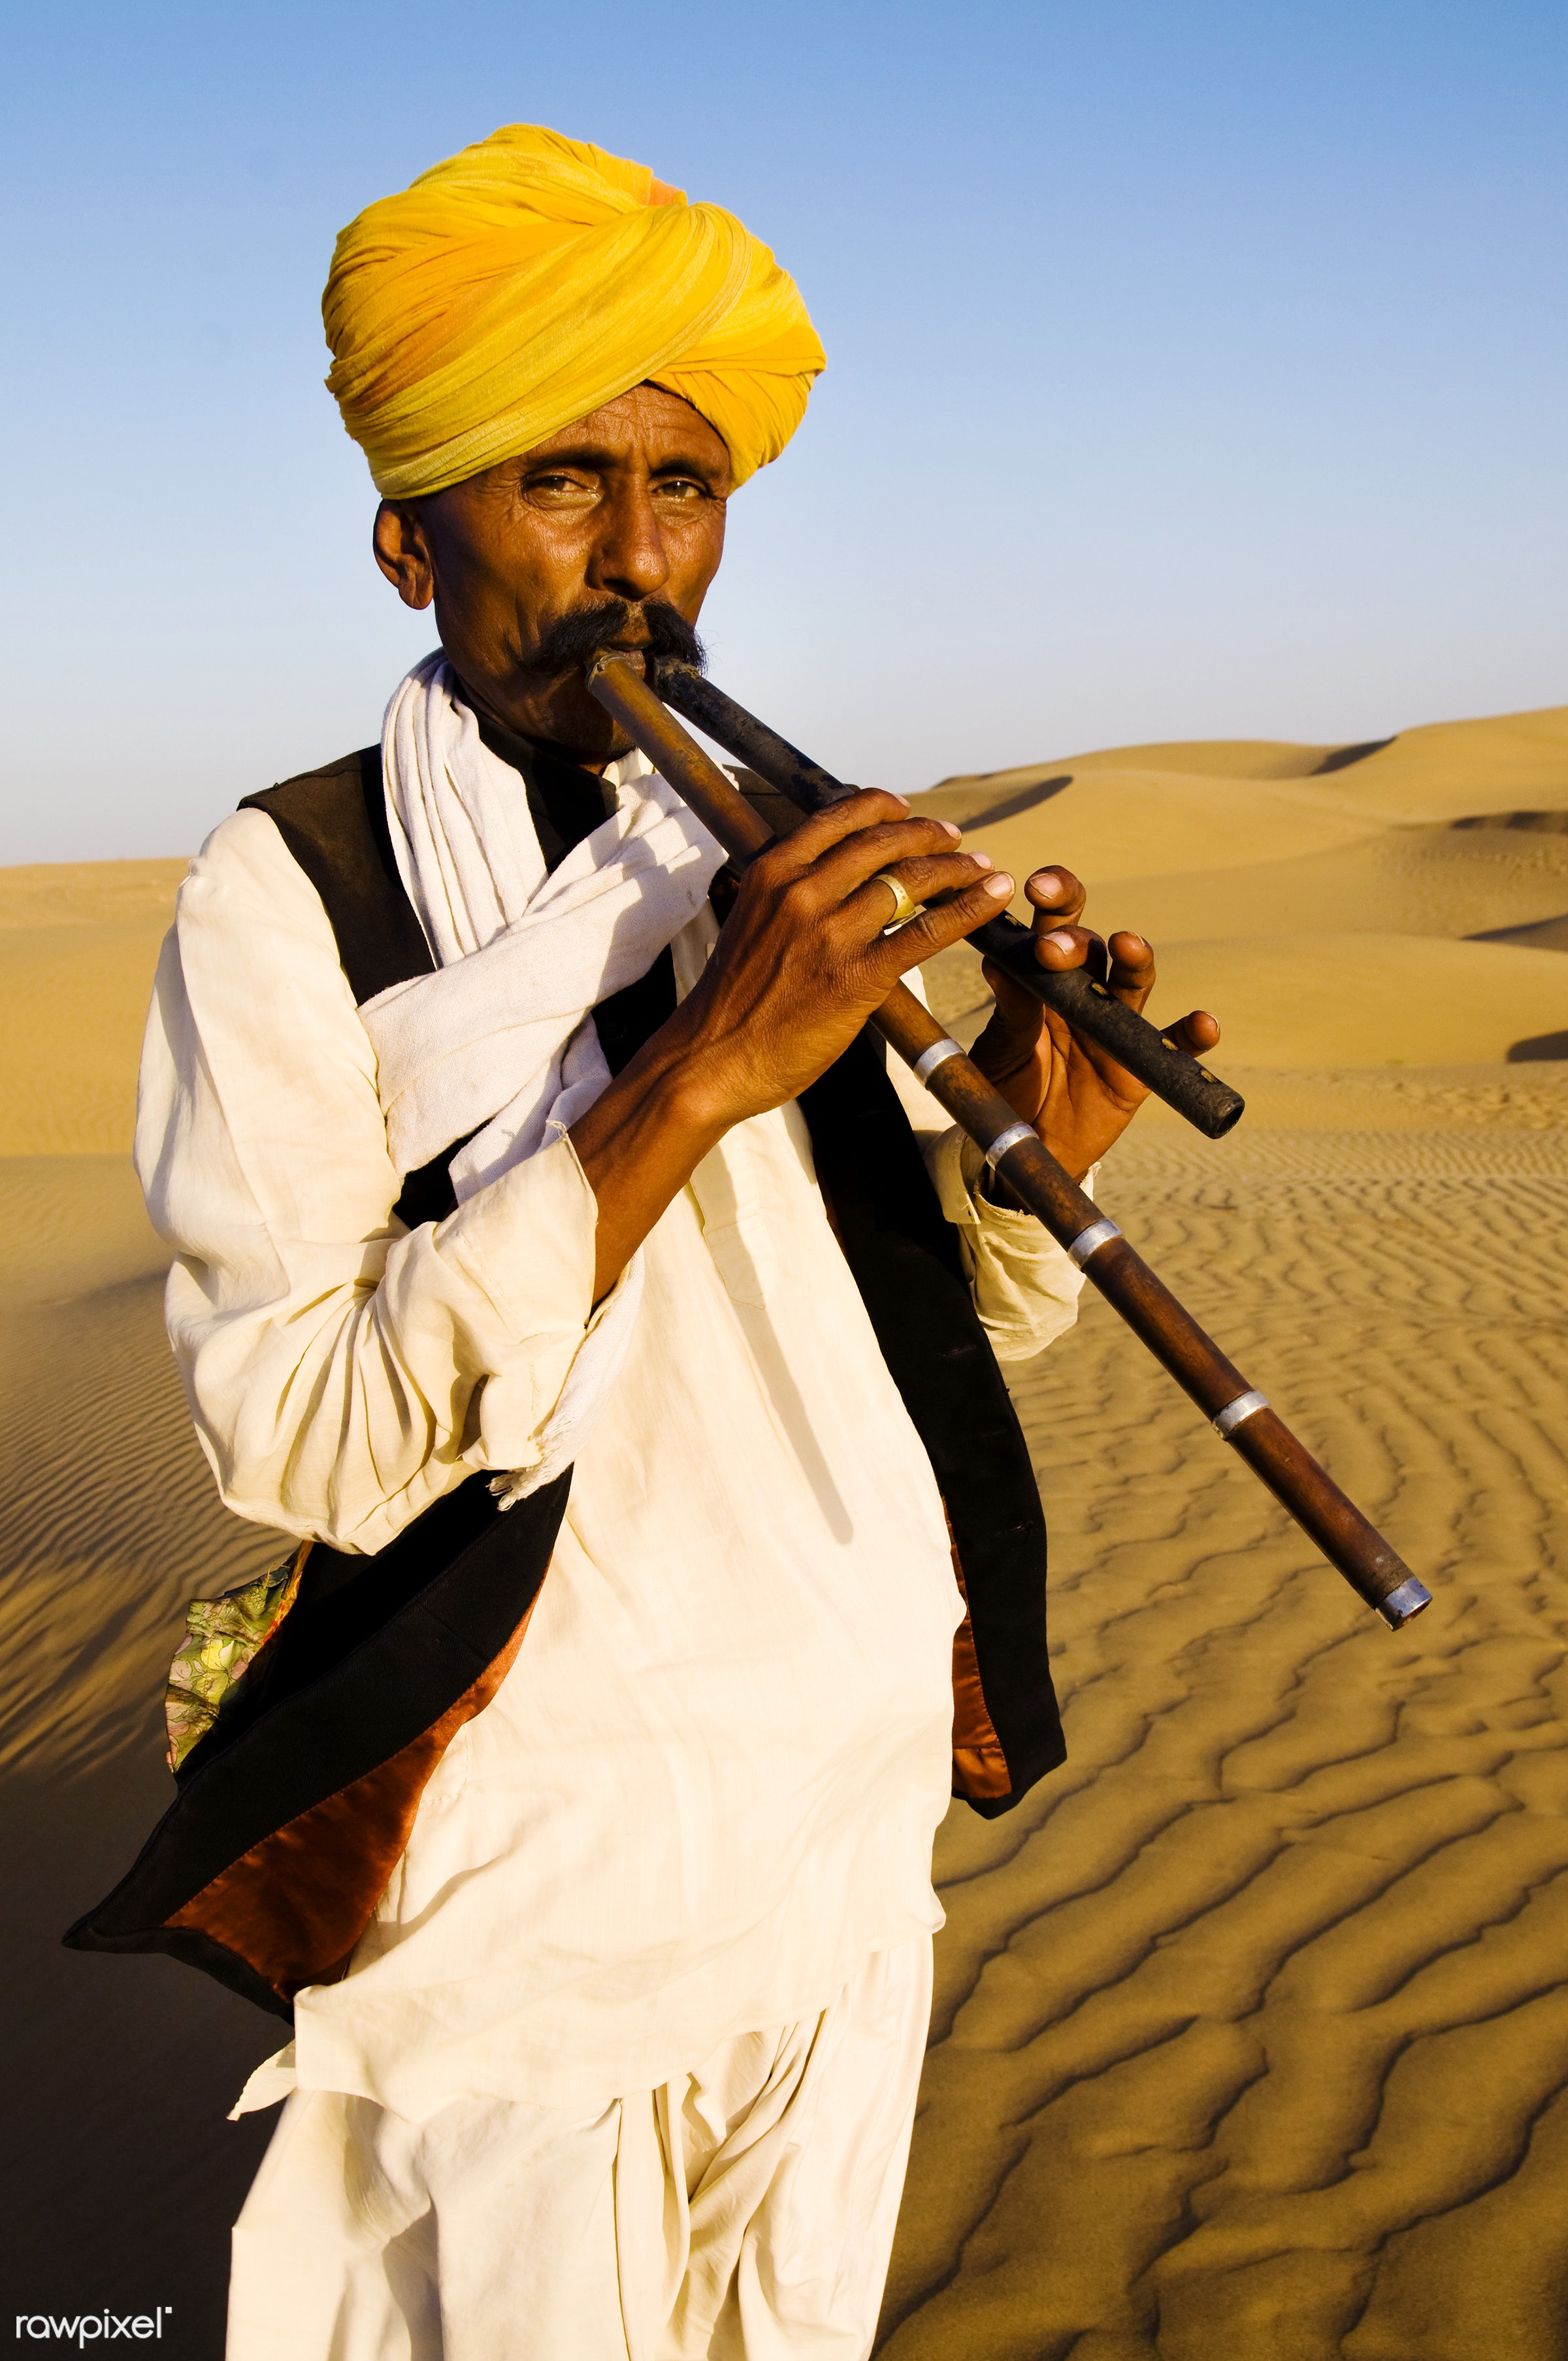 Indigenous Indian man playing wind pipe in a desert. - asia, culture, day, desert, exoticism, heat, india, indian, indian...